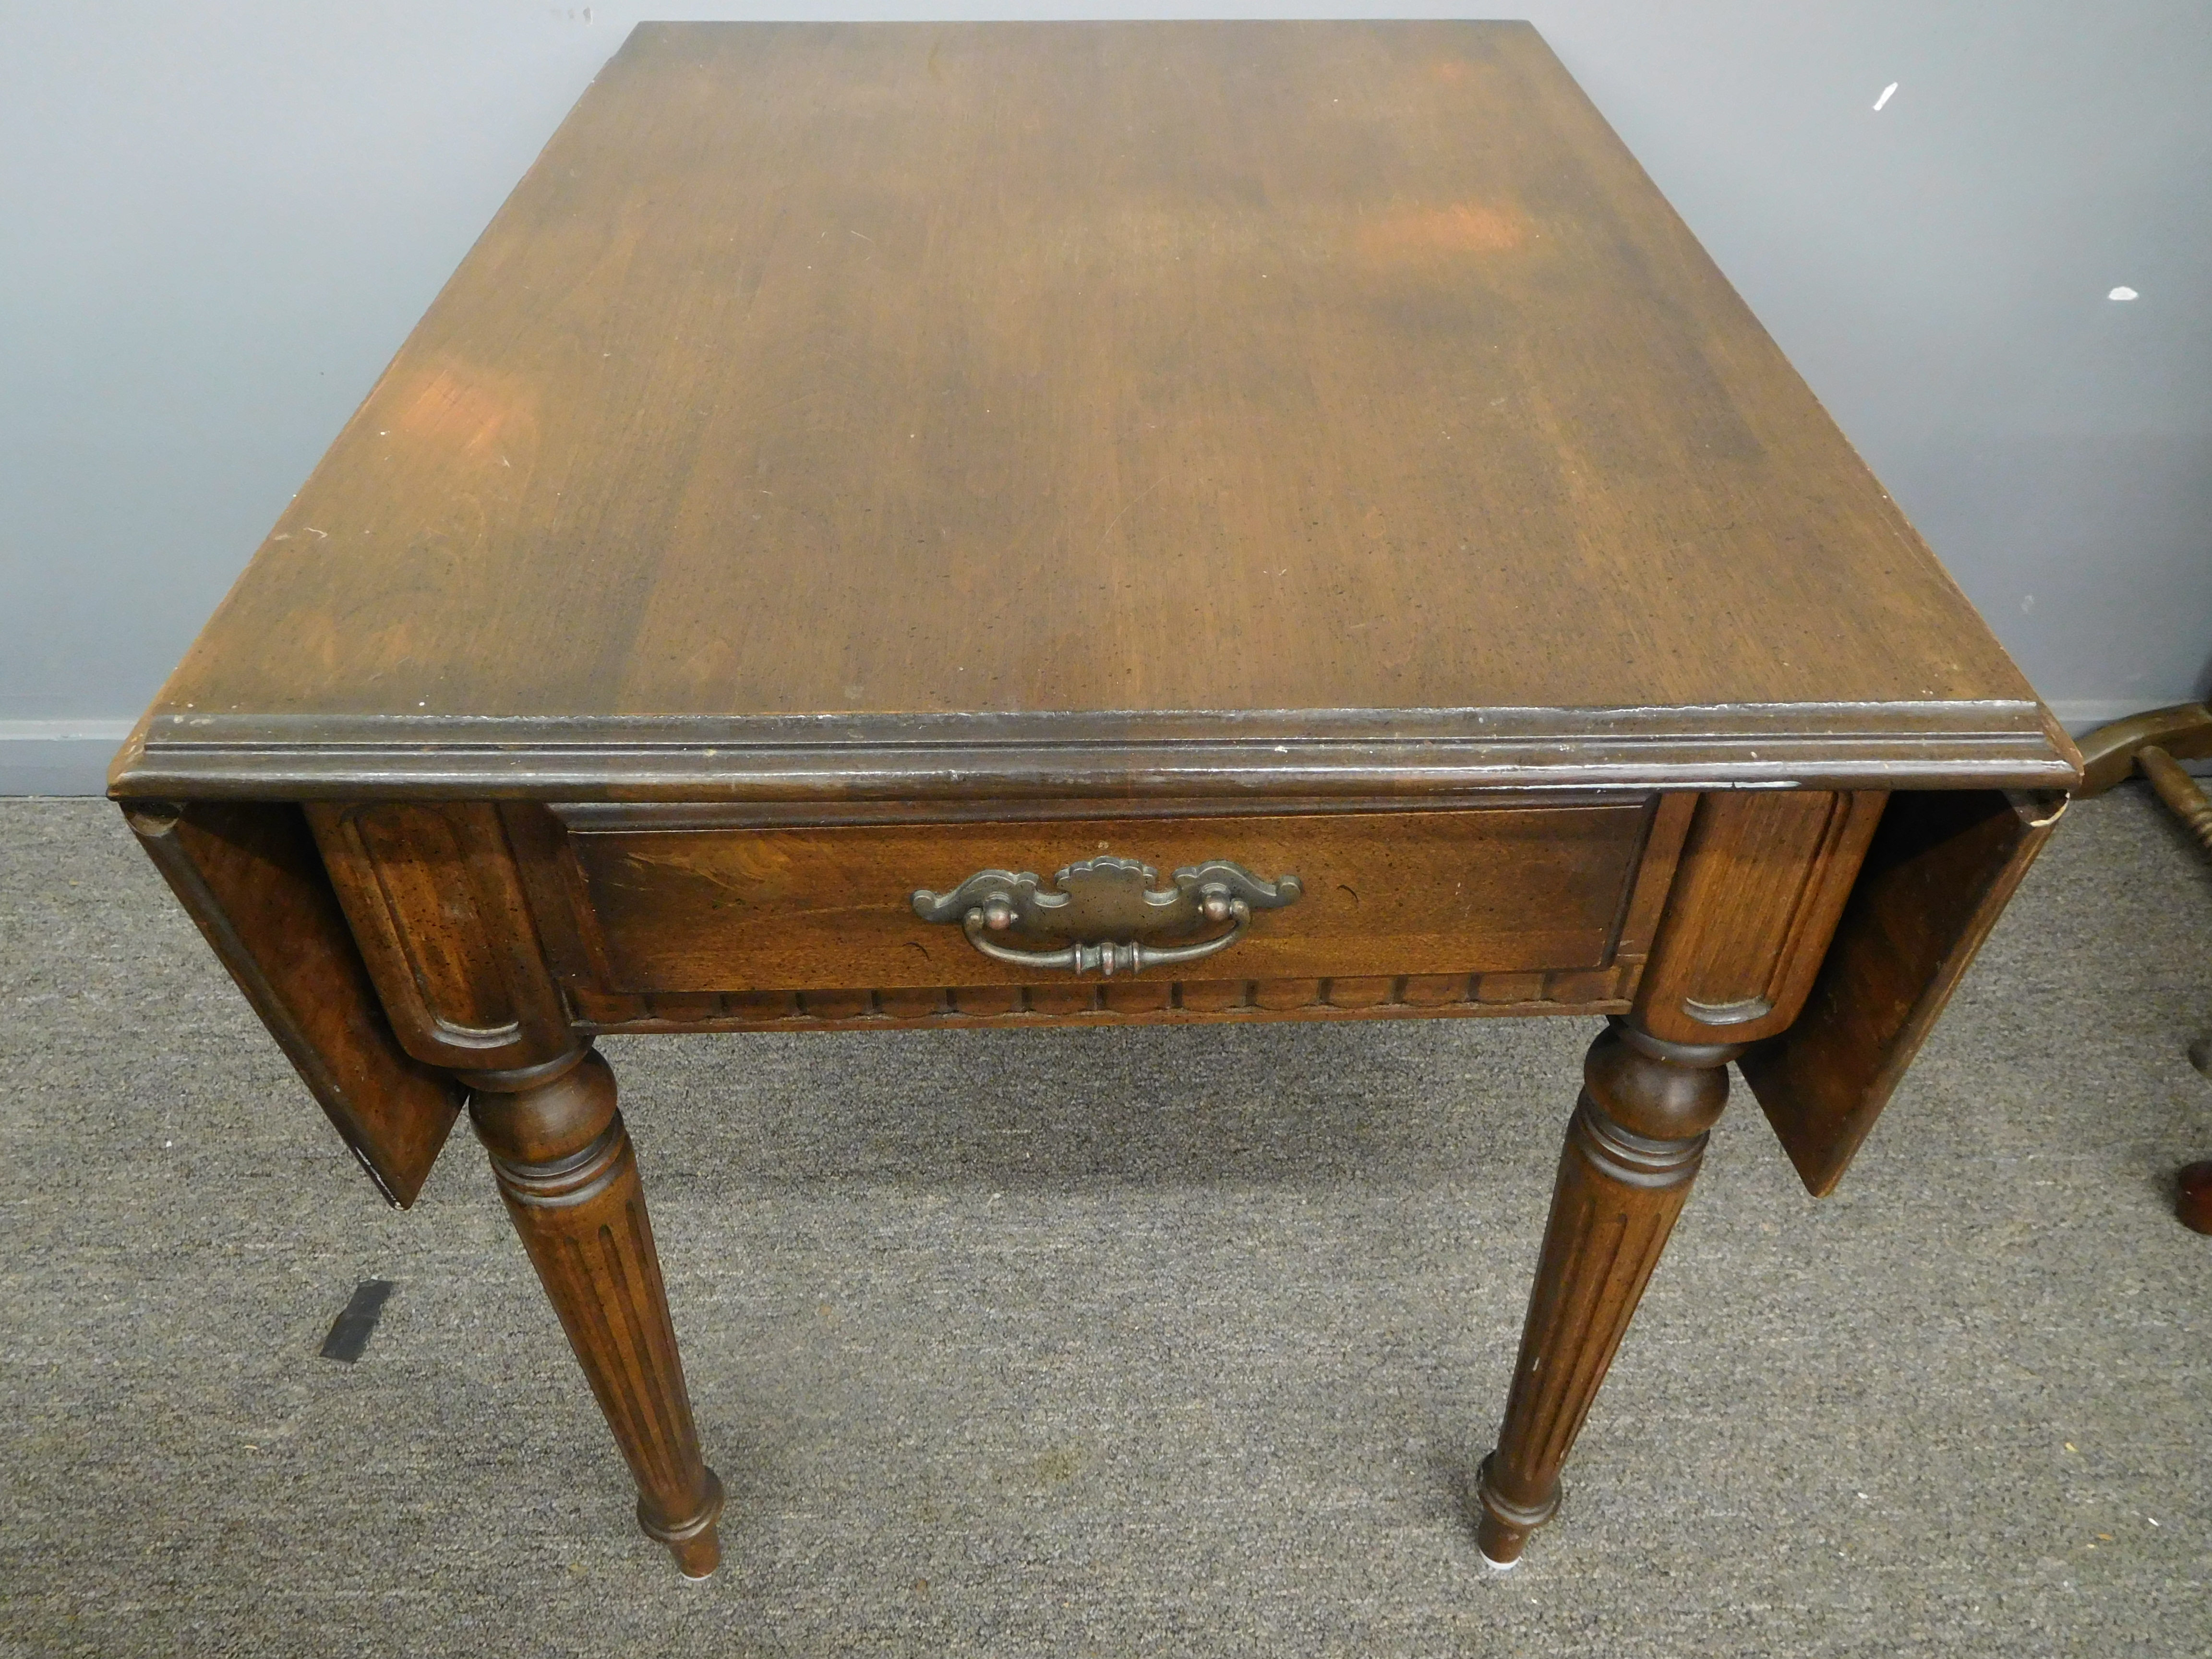 Ethan Allen Vintage Double Drop Leaf End Table w/ Drawer